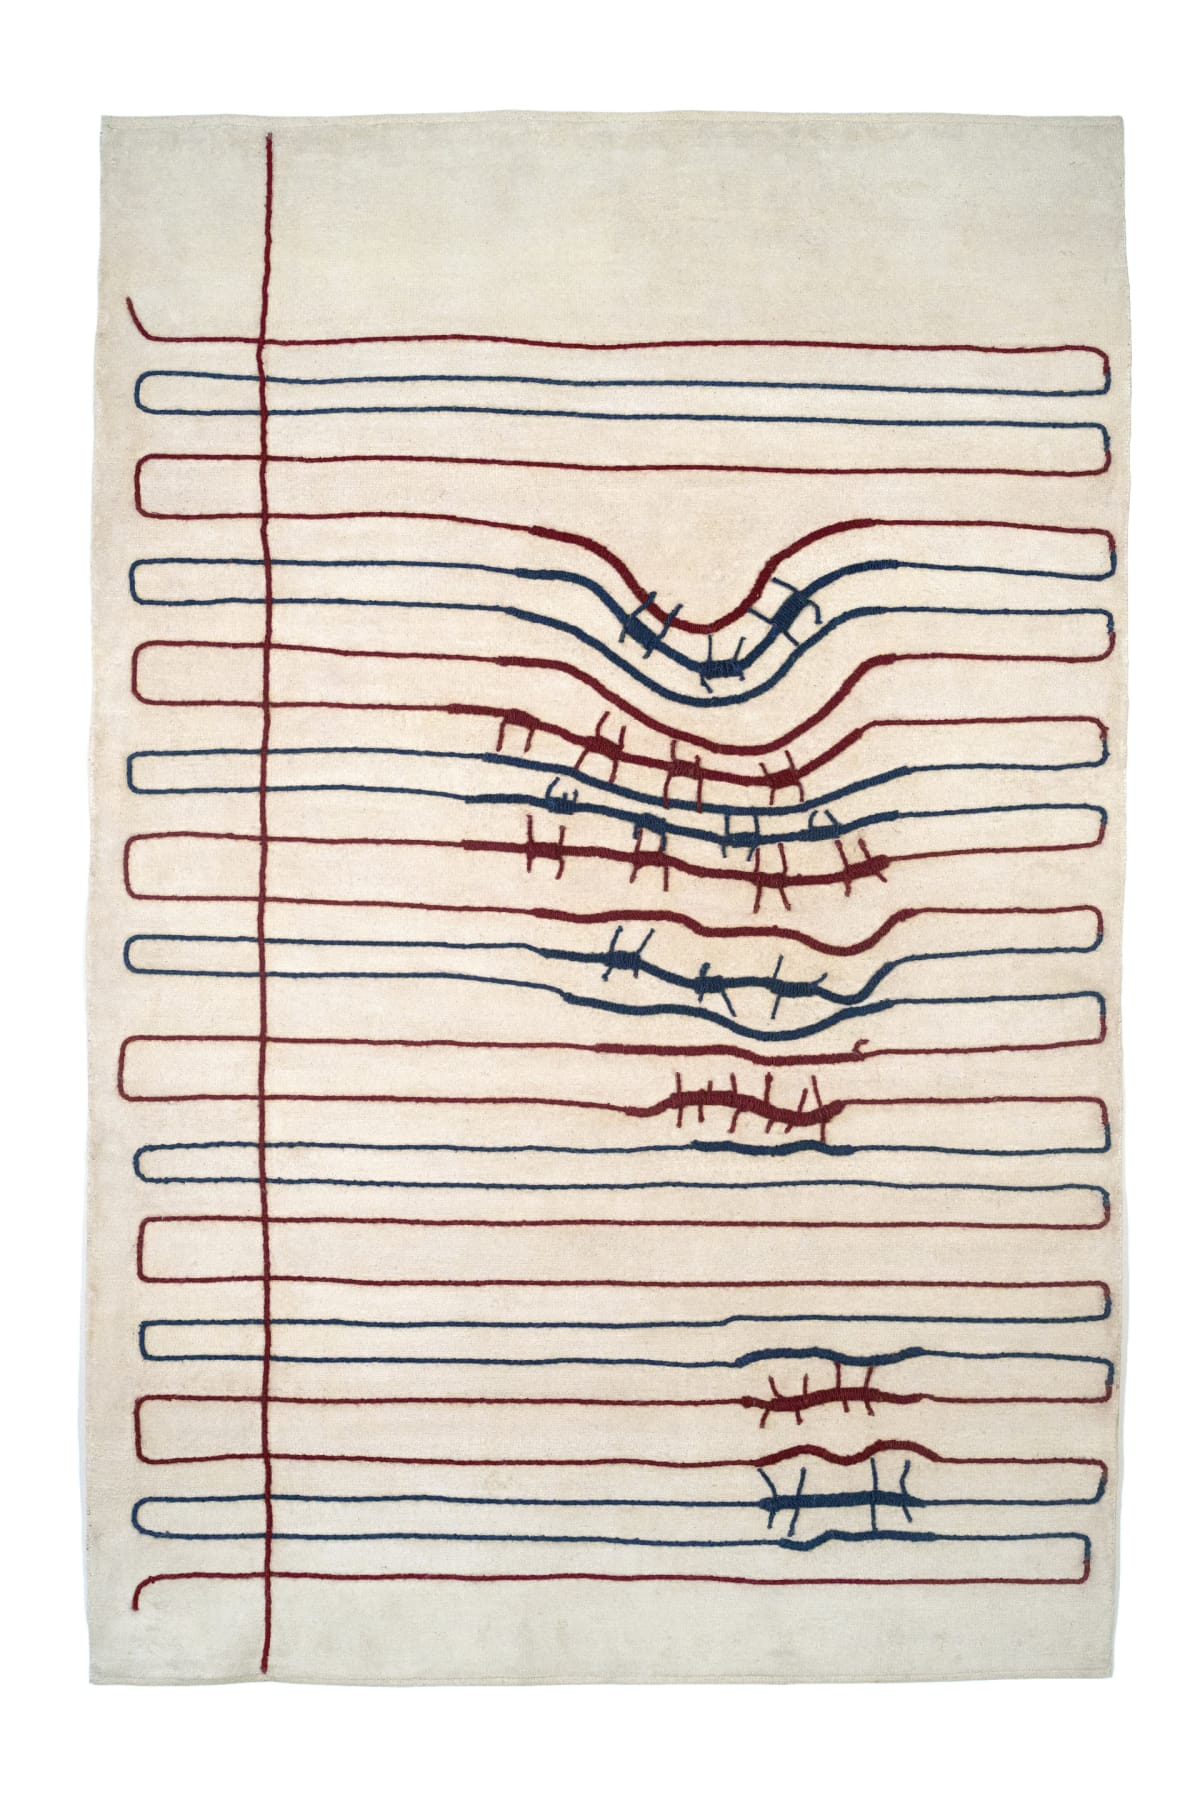 Reena Saini Kallat, Ruled Paper (red, blue, white), 2018-2019